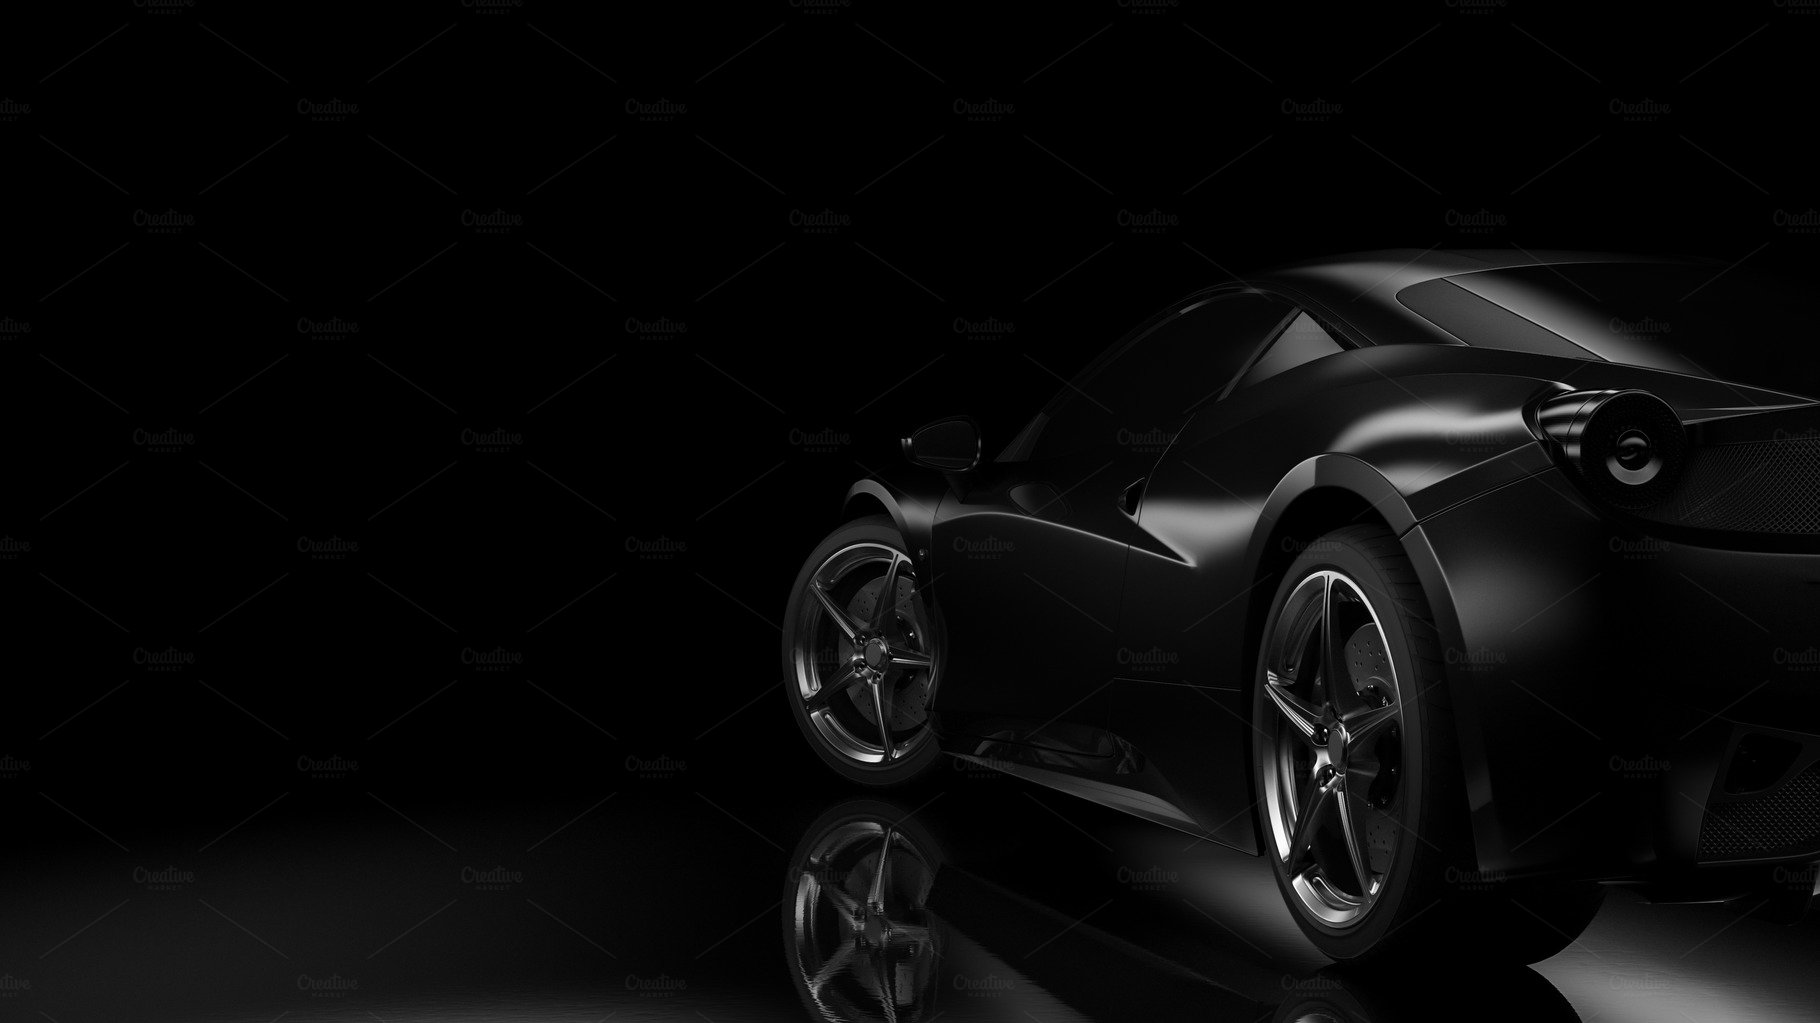 Dark background with car silhouette ~ Transportation ...